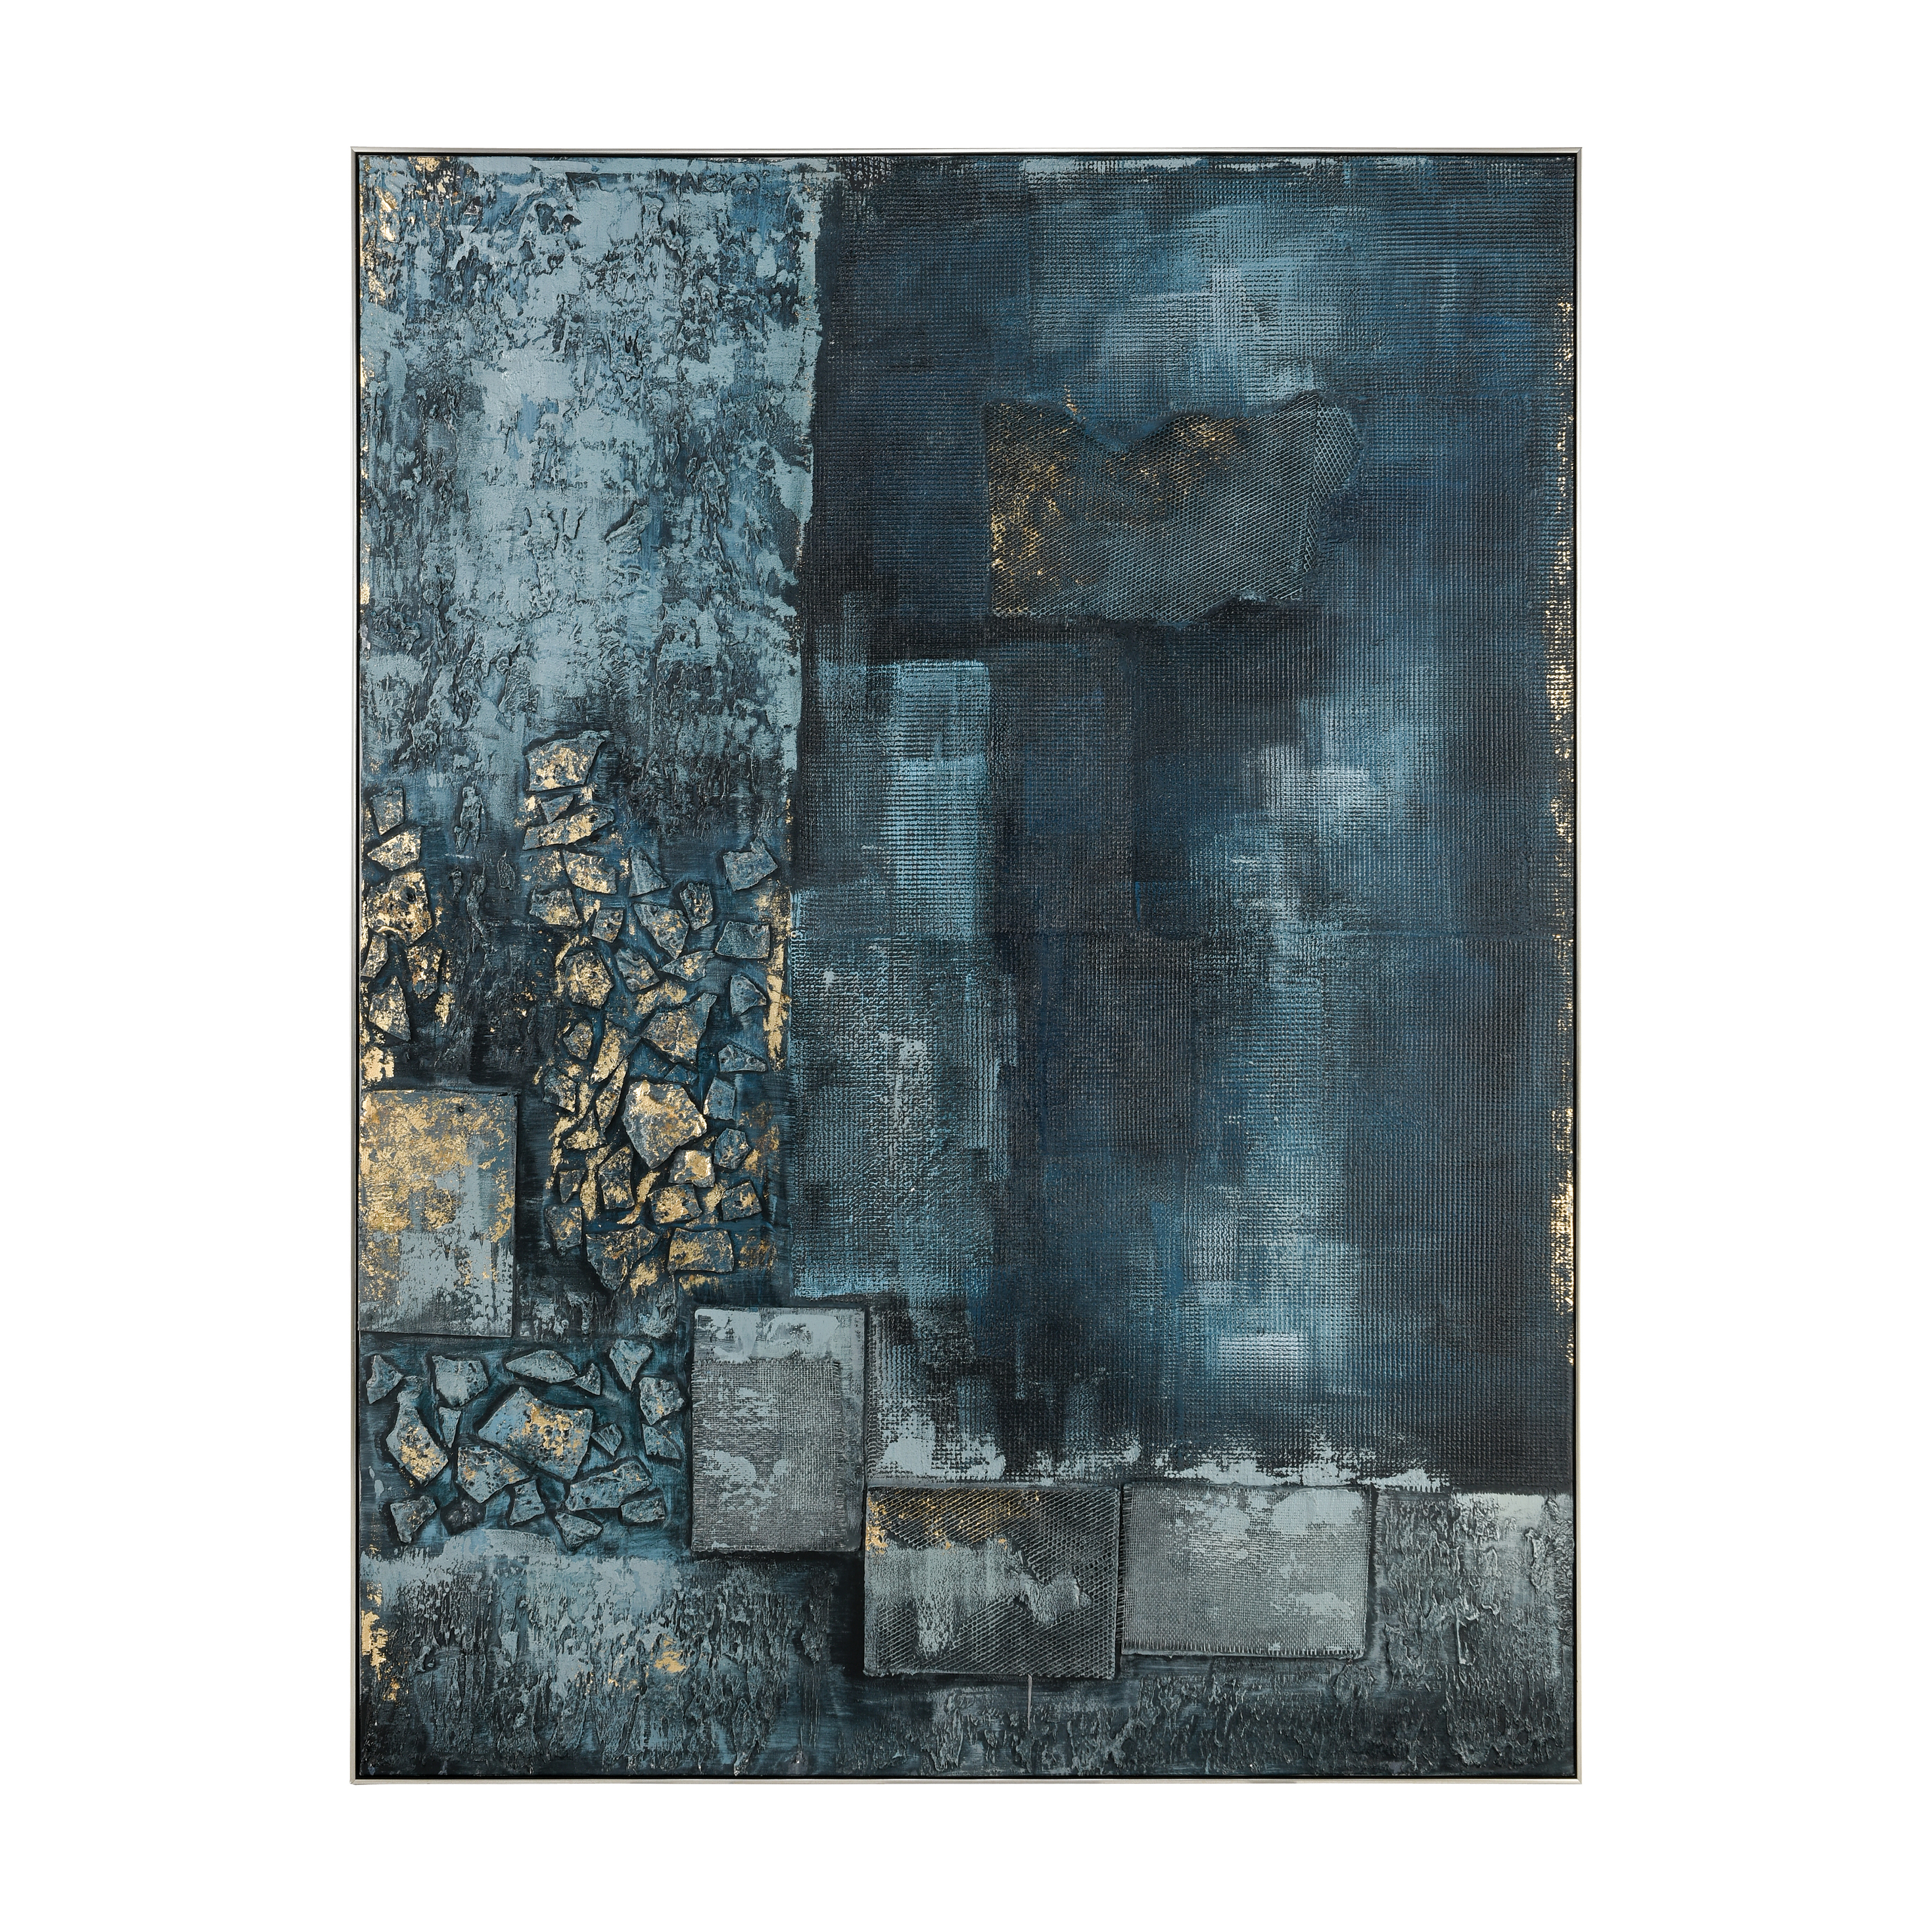 Sink Hole Wall Decor in Teal and Blue | Elk Home